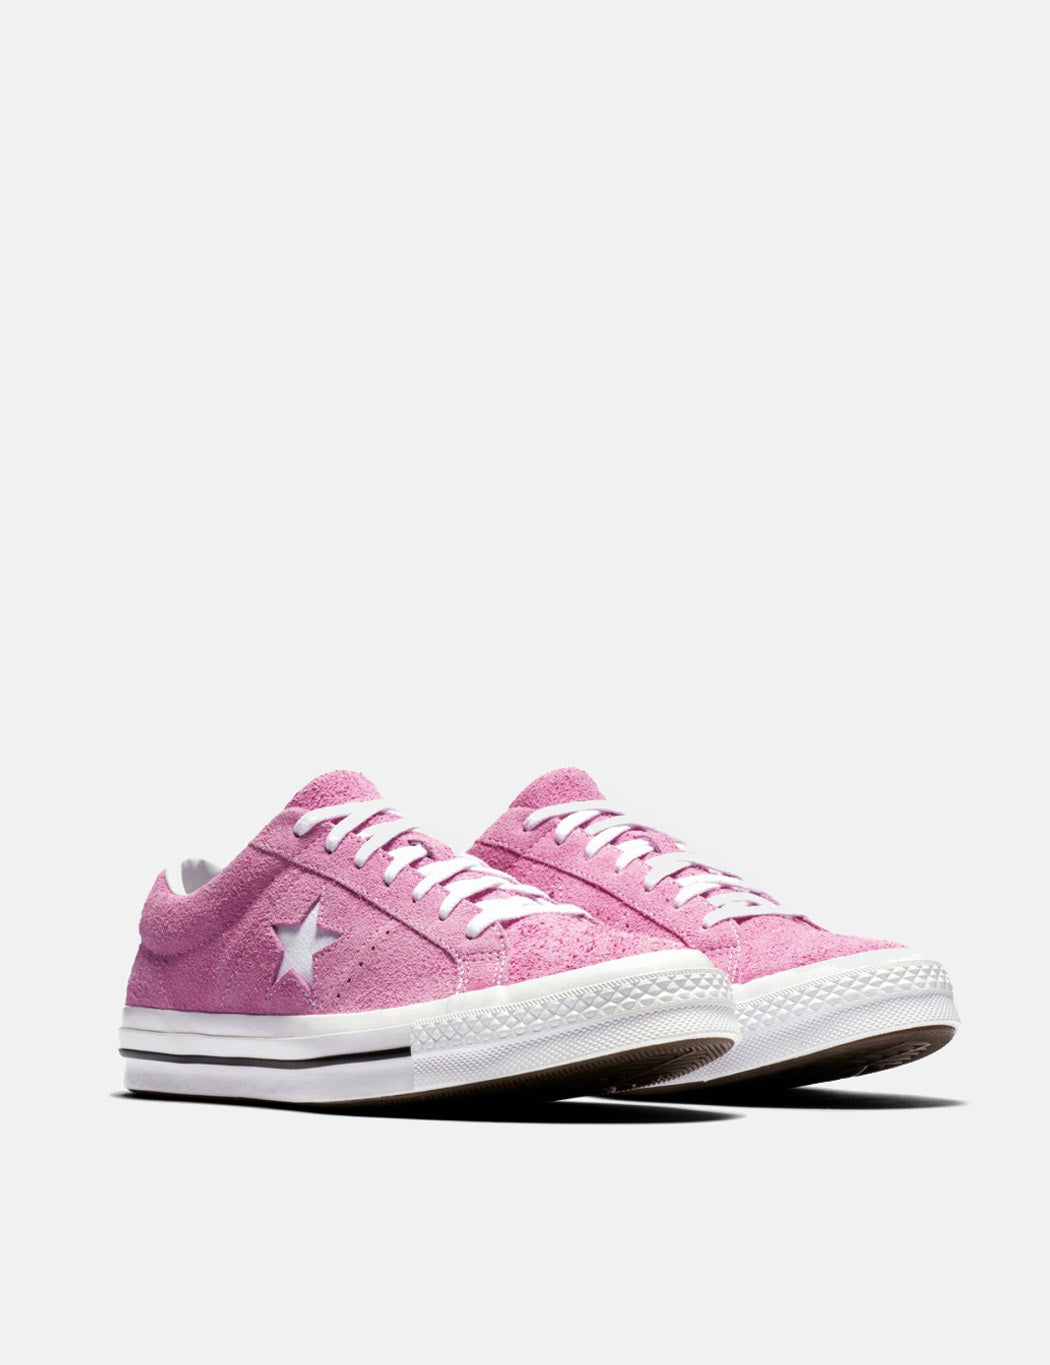 38572366451 ... Converse One Star Ox Low Suede (159492C) - Light Orchid White Black ...